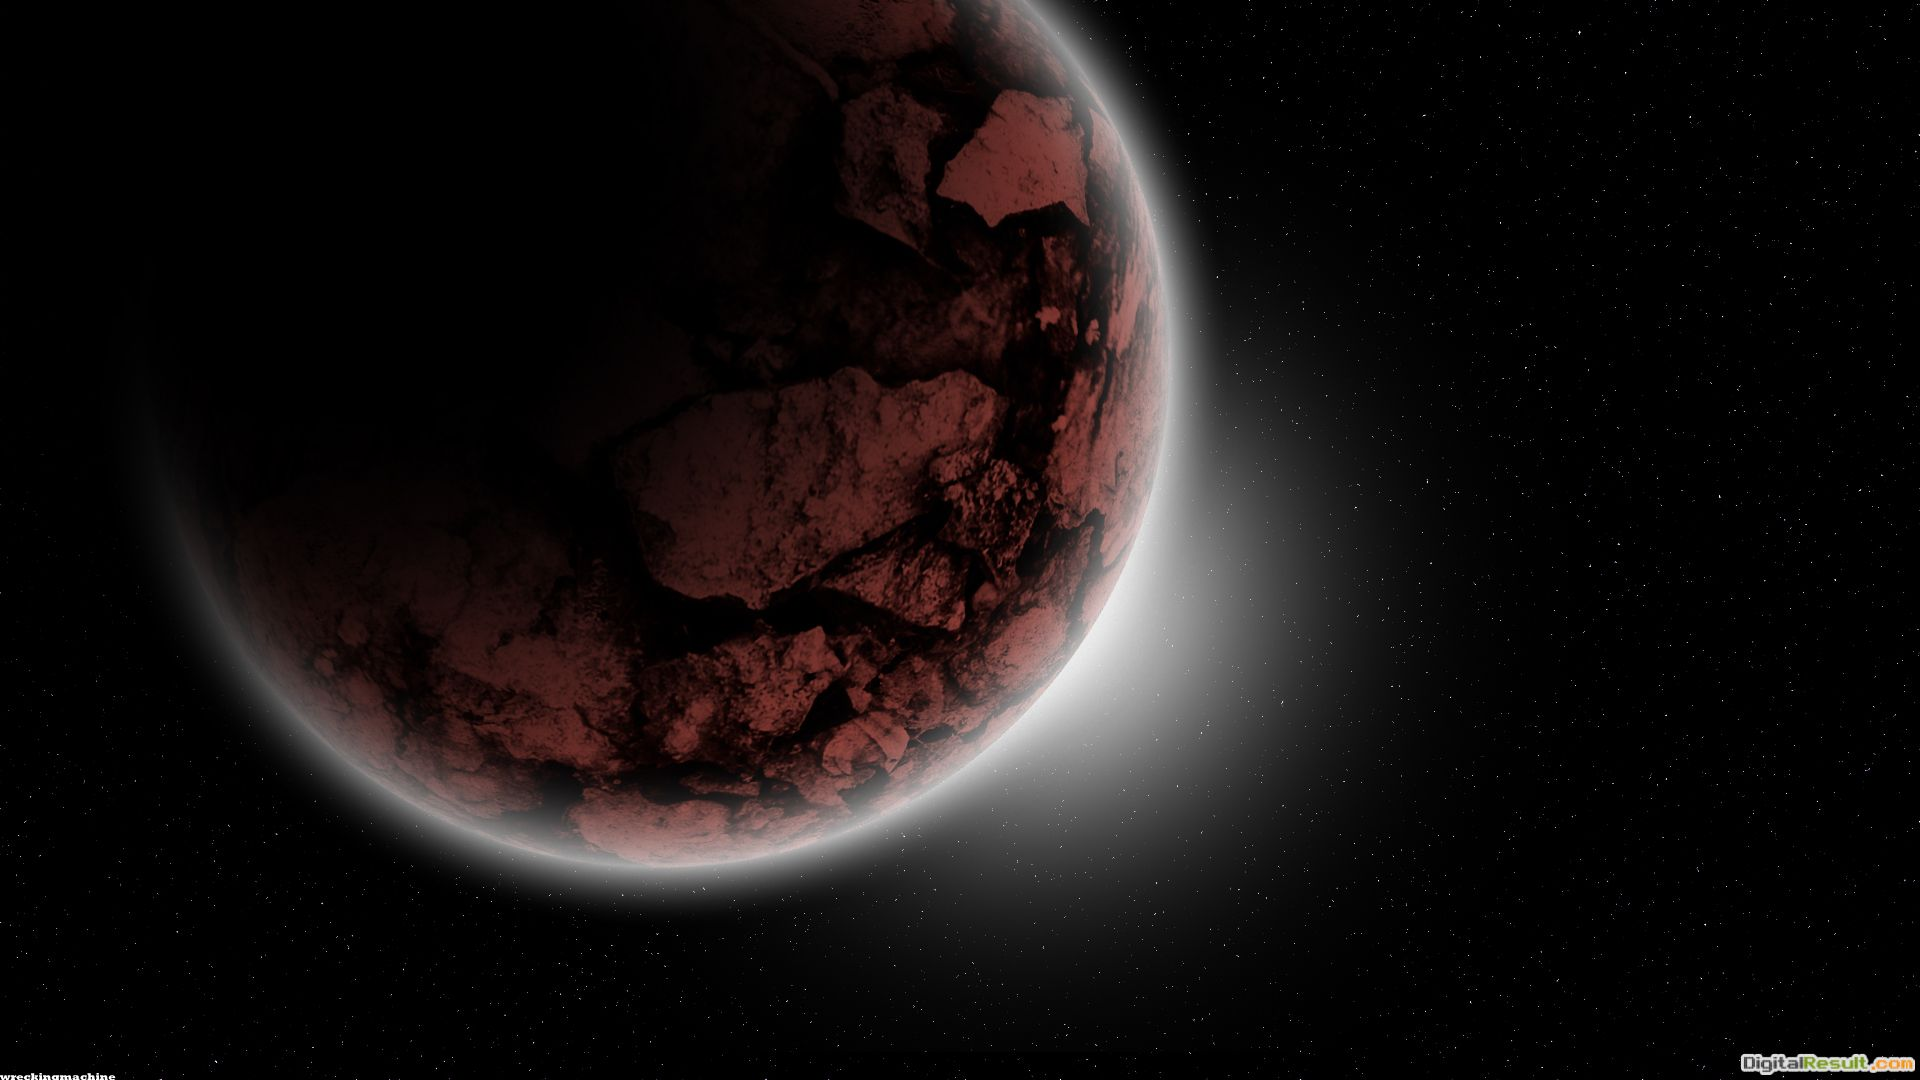 Red Planet Wallpaper by wreckingmachine1 on DeviantArt 823